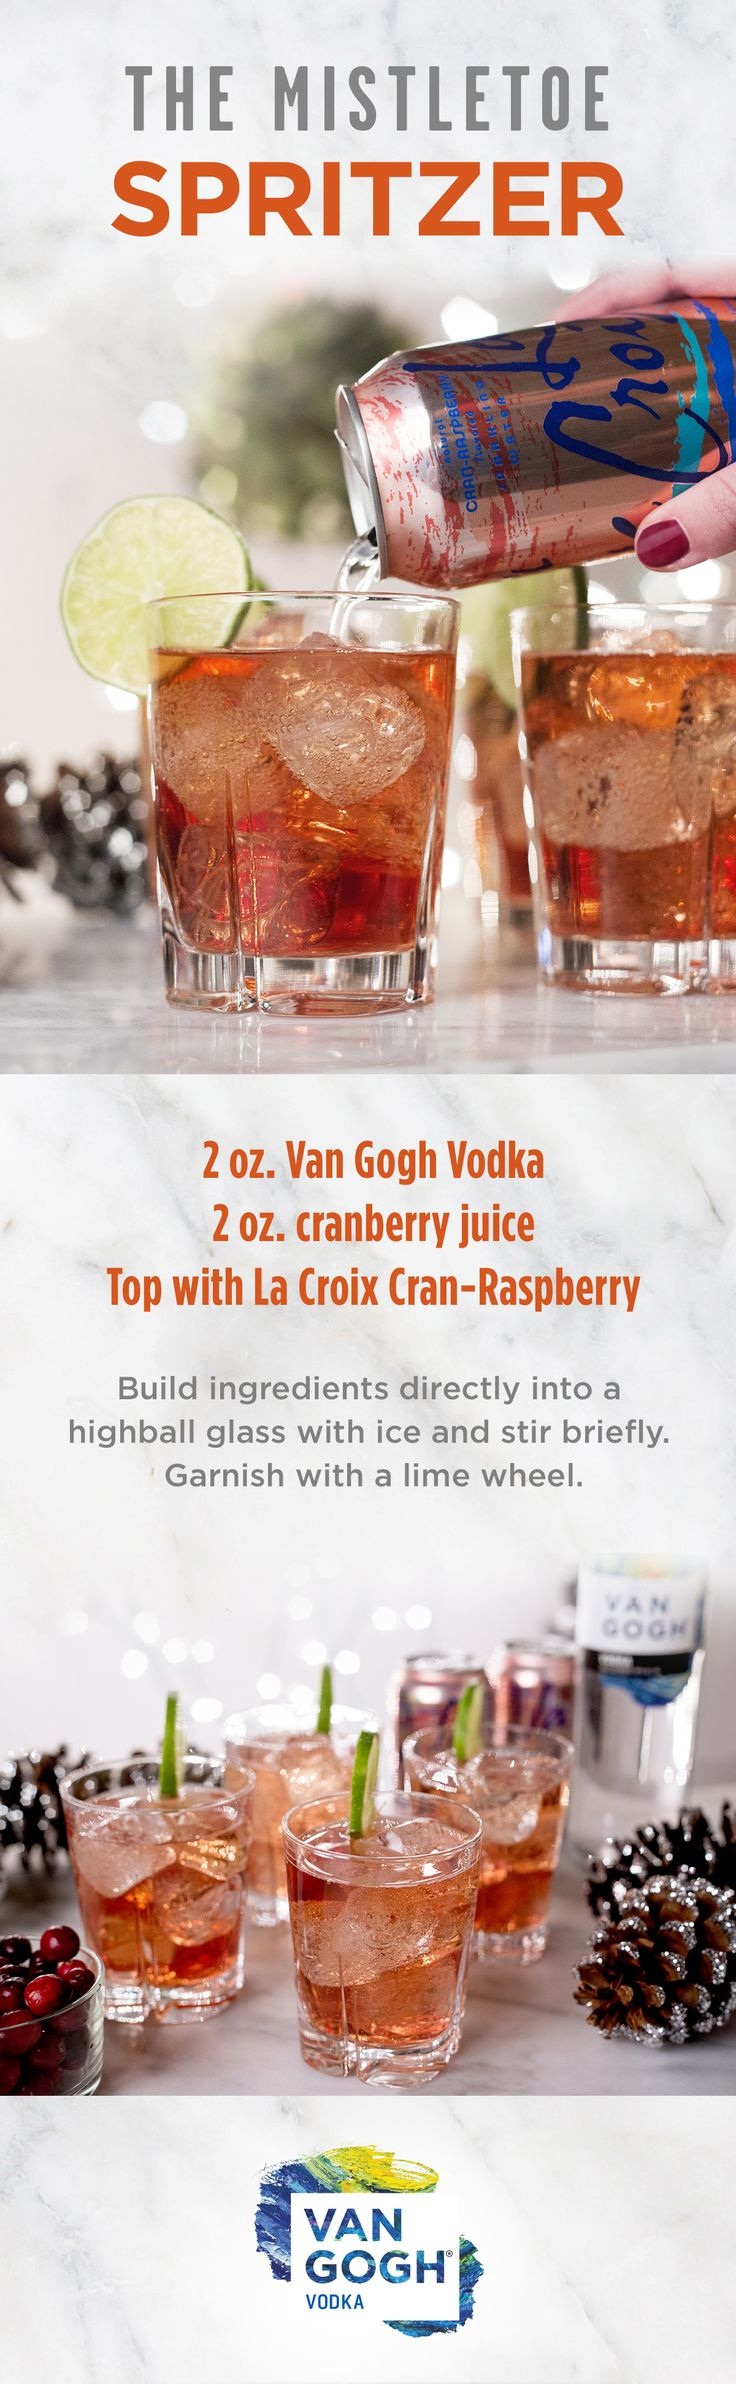 Meet us by the mistletoe! Add 2 oz. Van Gogh Vodka, 2. oz cranberry juice and a splash of La Croix Cran-Raspberry for the perfect refreshing cocktail. Top off with a lime wedge for garnish!